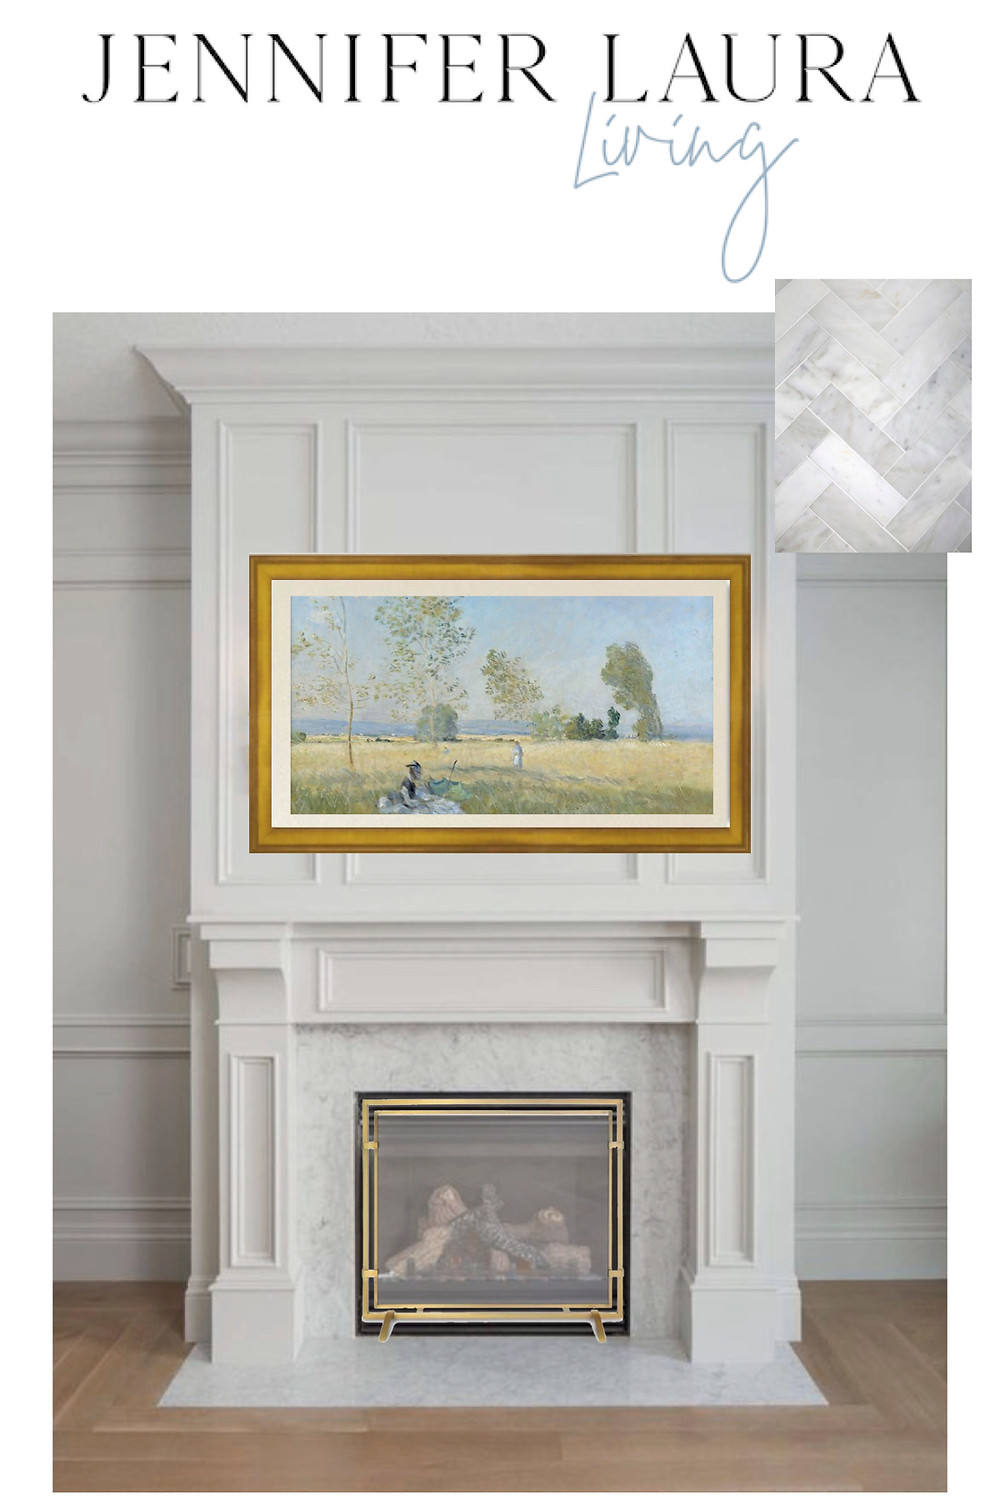 fireplace inspiration mood board, molding classic white and gold, frame tv